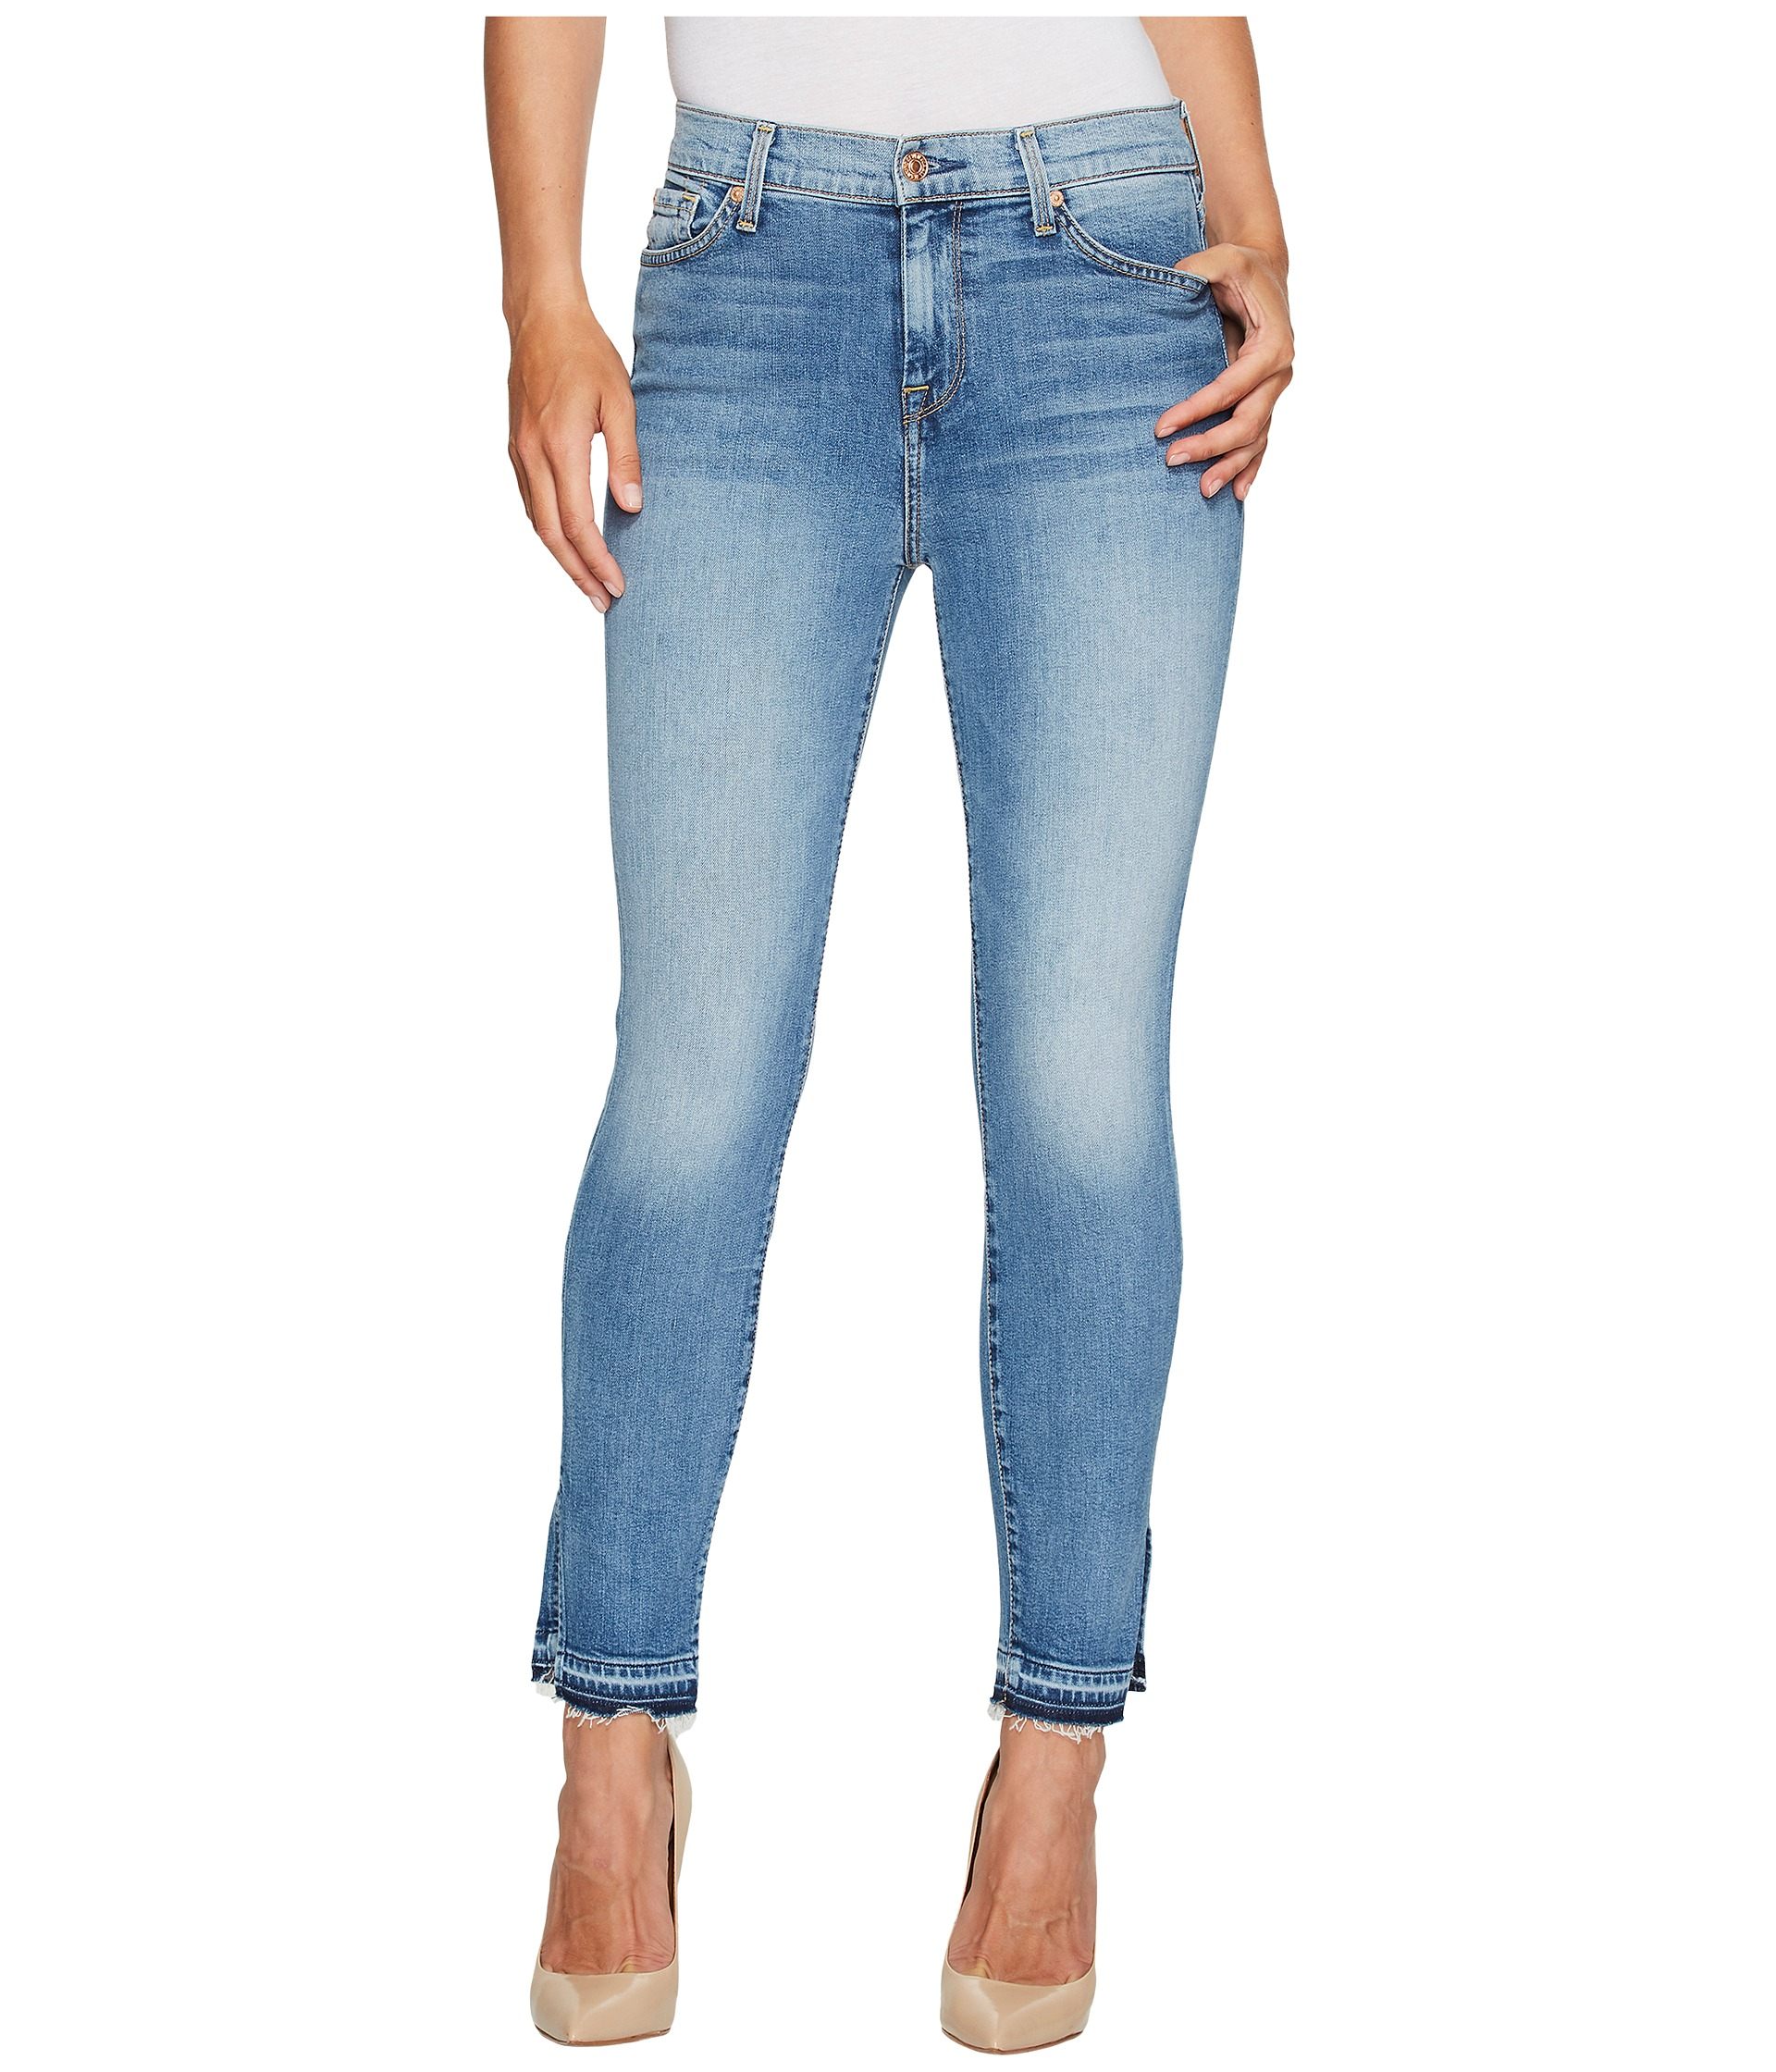 Levis Womens 721 High Rise Skinny, Clothing, Women | Shipped Free ...